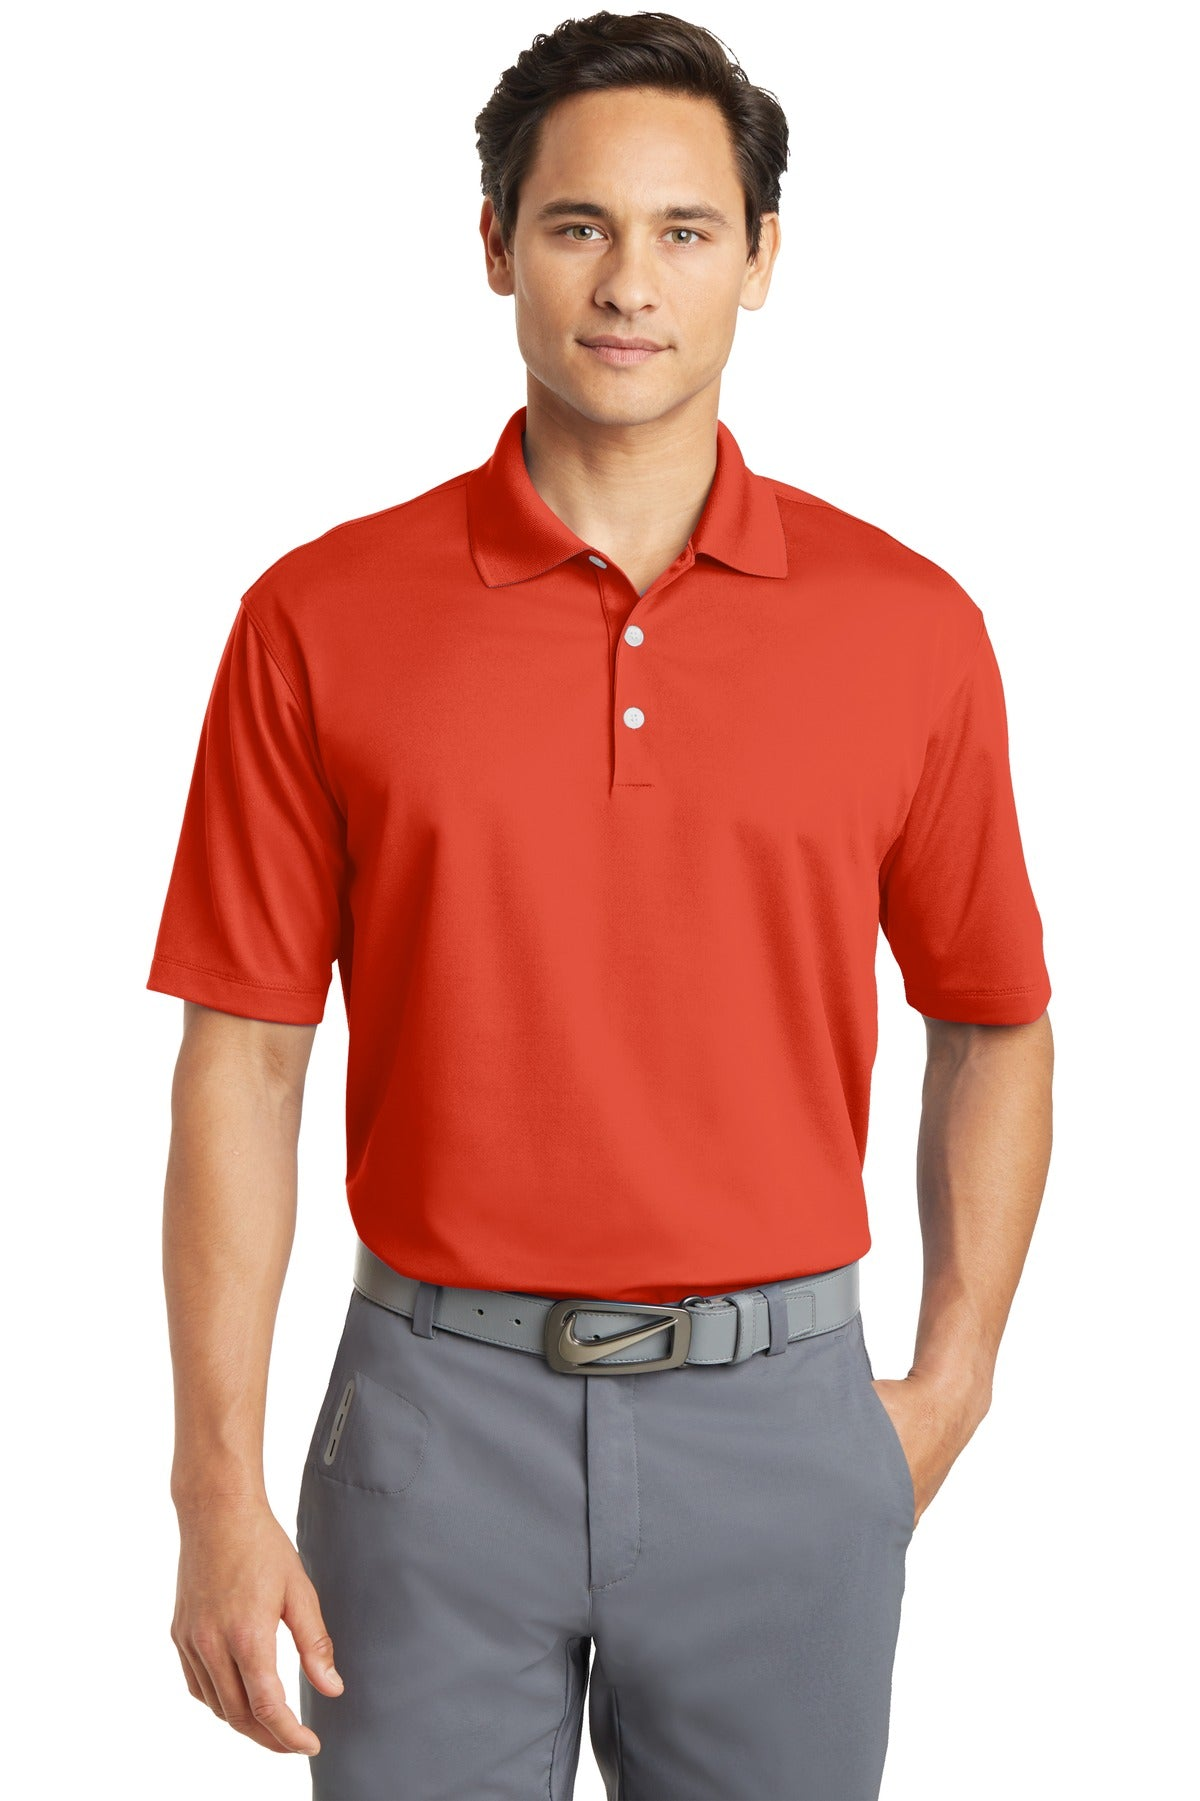 Team Orange Nike Tall Dri-FIT Micro Pique Polo.